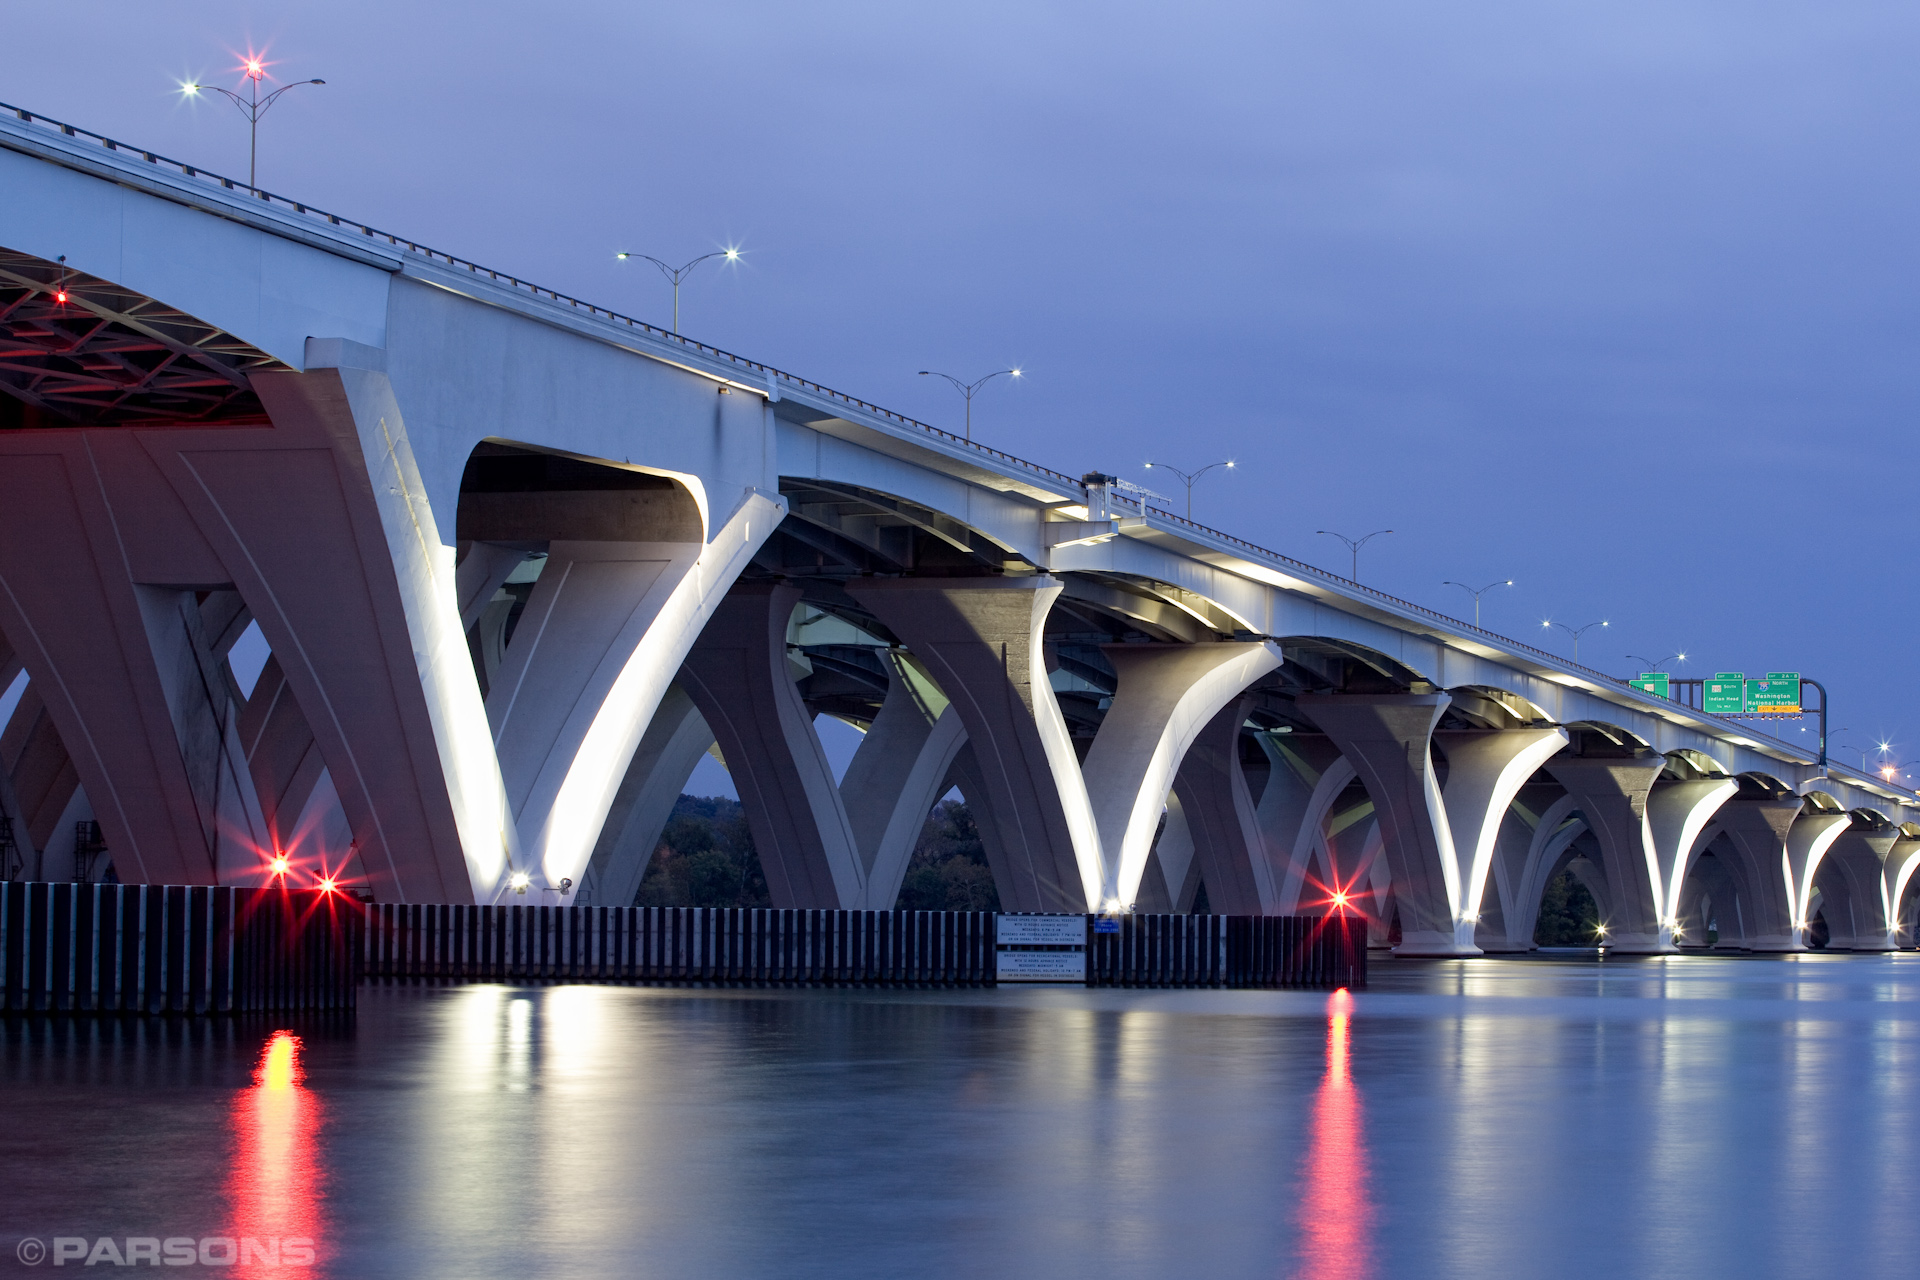 Civil-Engineering-Woodrow-Wilson-Bridge-Virgina-Washington-DC-Night.JPG